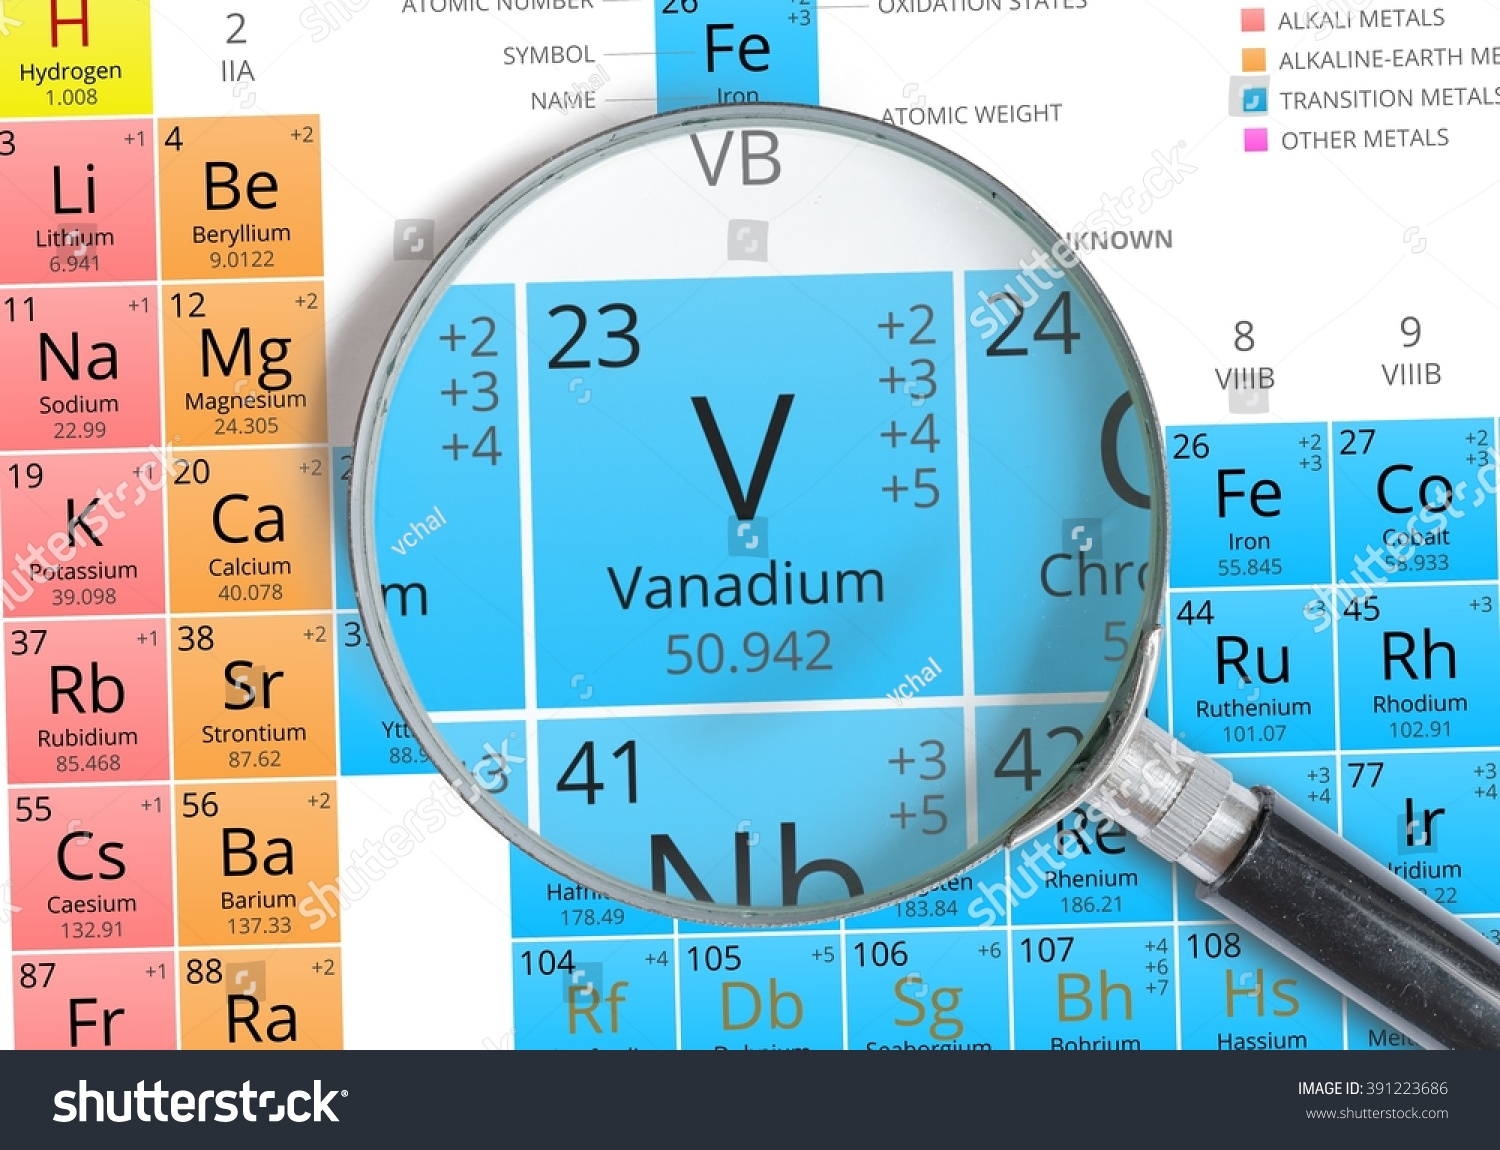 Vanadium symbol v element periodic table stock photo 391223686 vanadium symbol v element of the periodic table zoomed with magnifying glass gamestrikefo Gallery